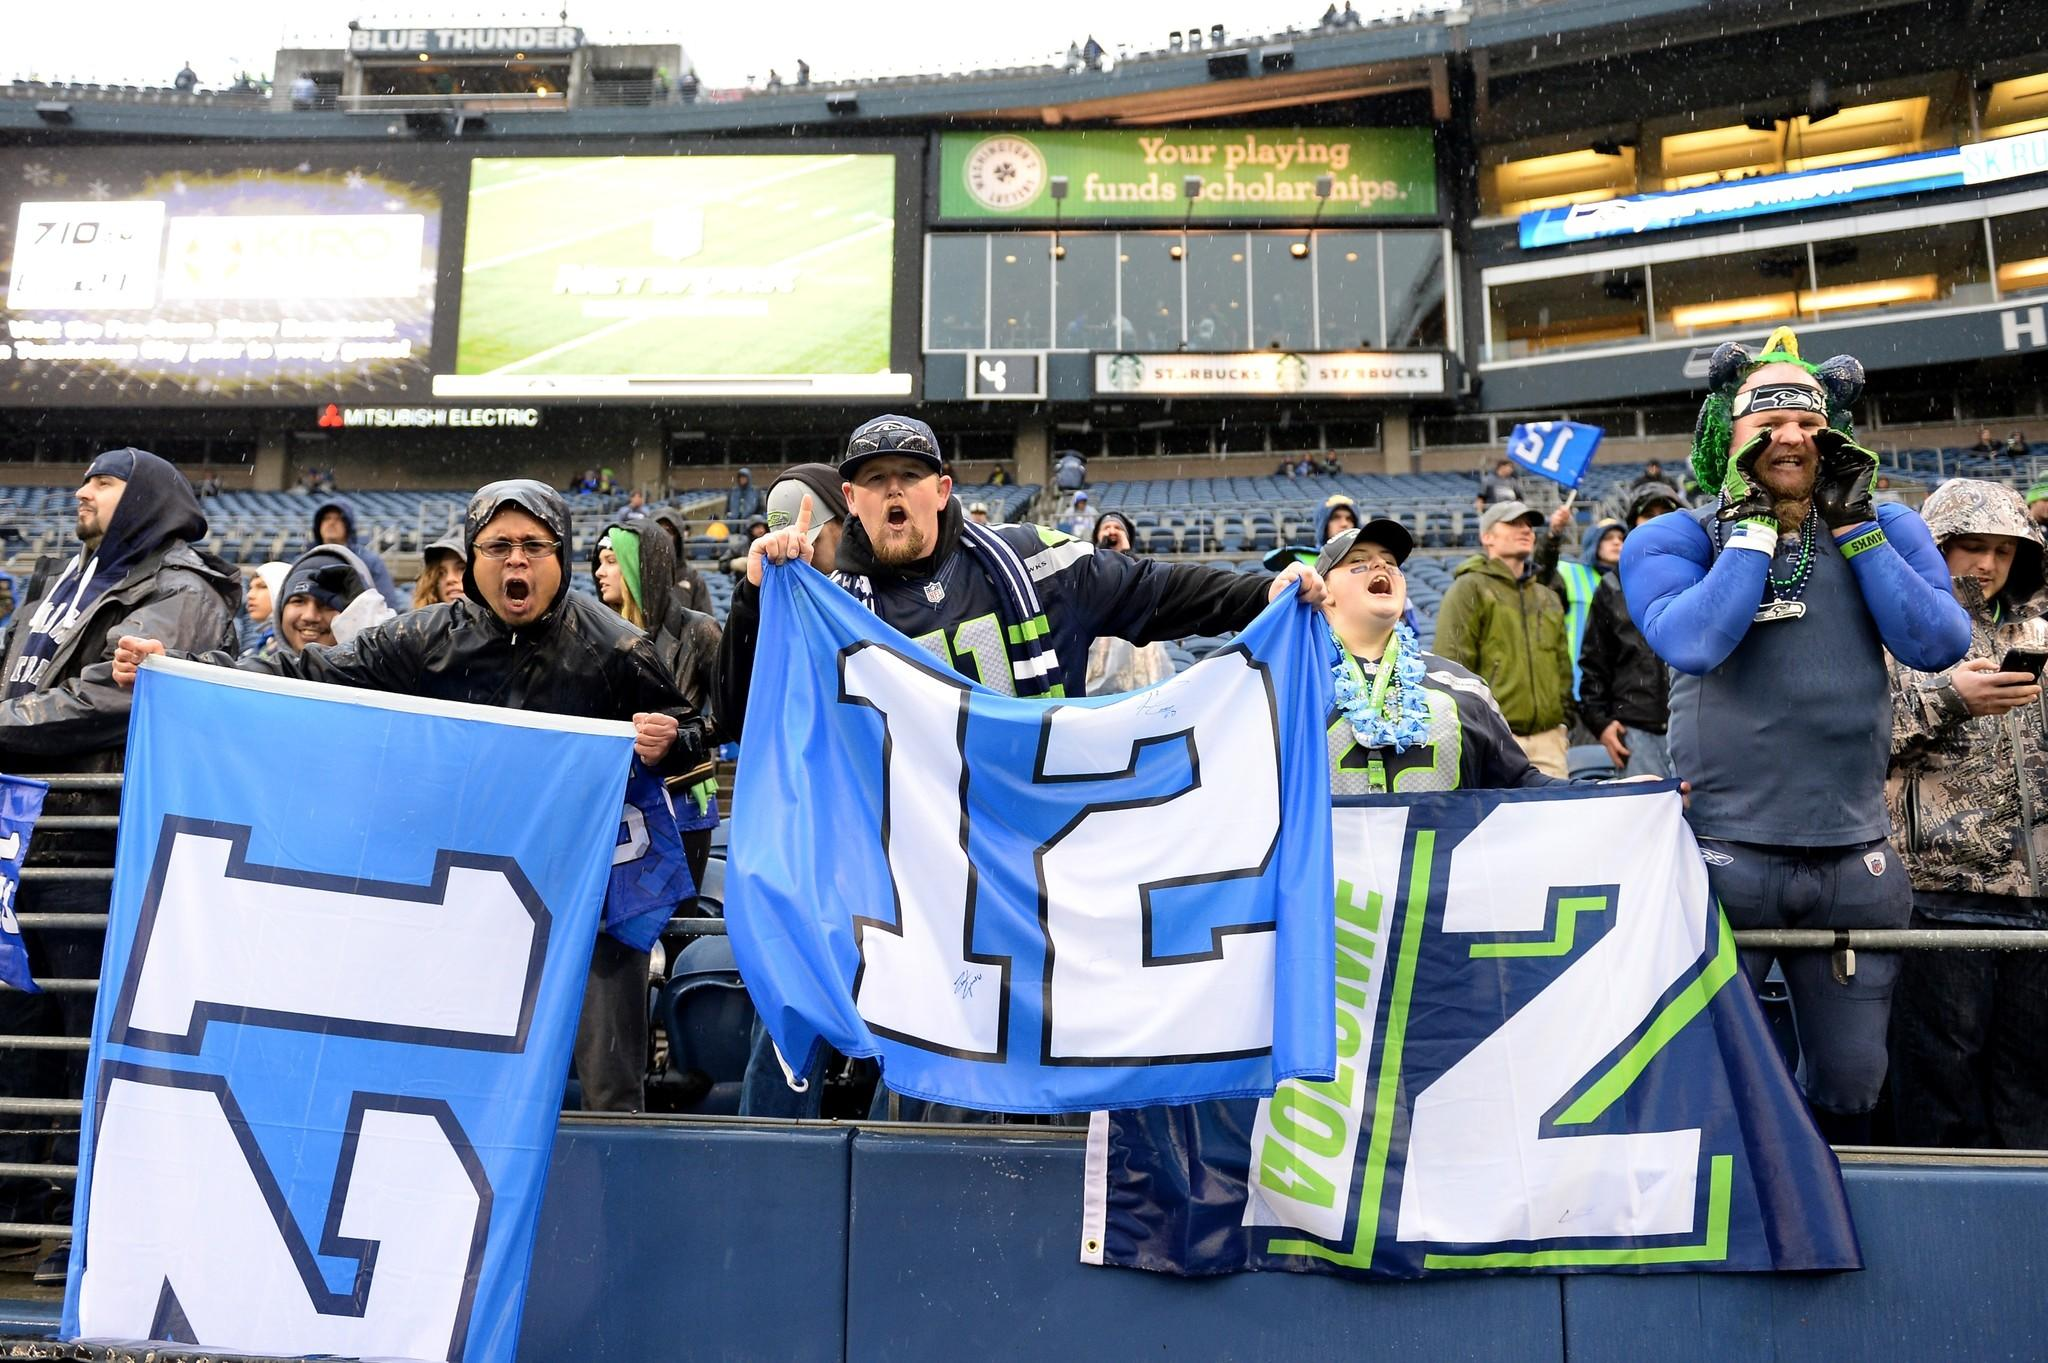 Seattle Sehawks fans hold up the 12th Man signs before the Seahawks take on the New Orleans Saints in the NFC Divisional Playoff Game at CenturyLink Field.